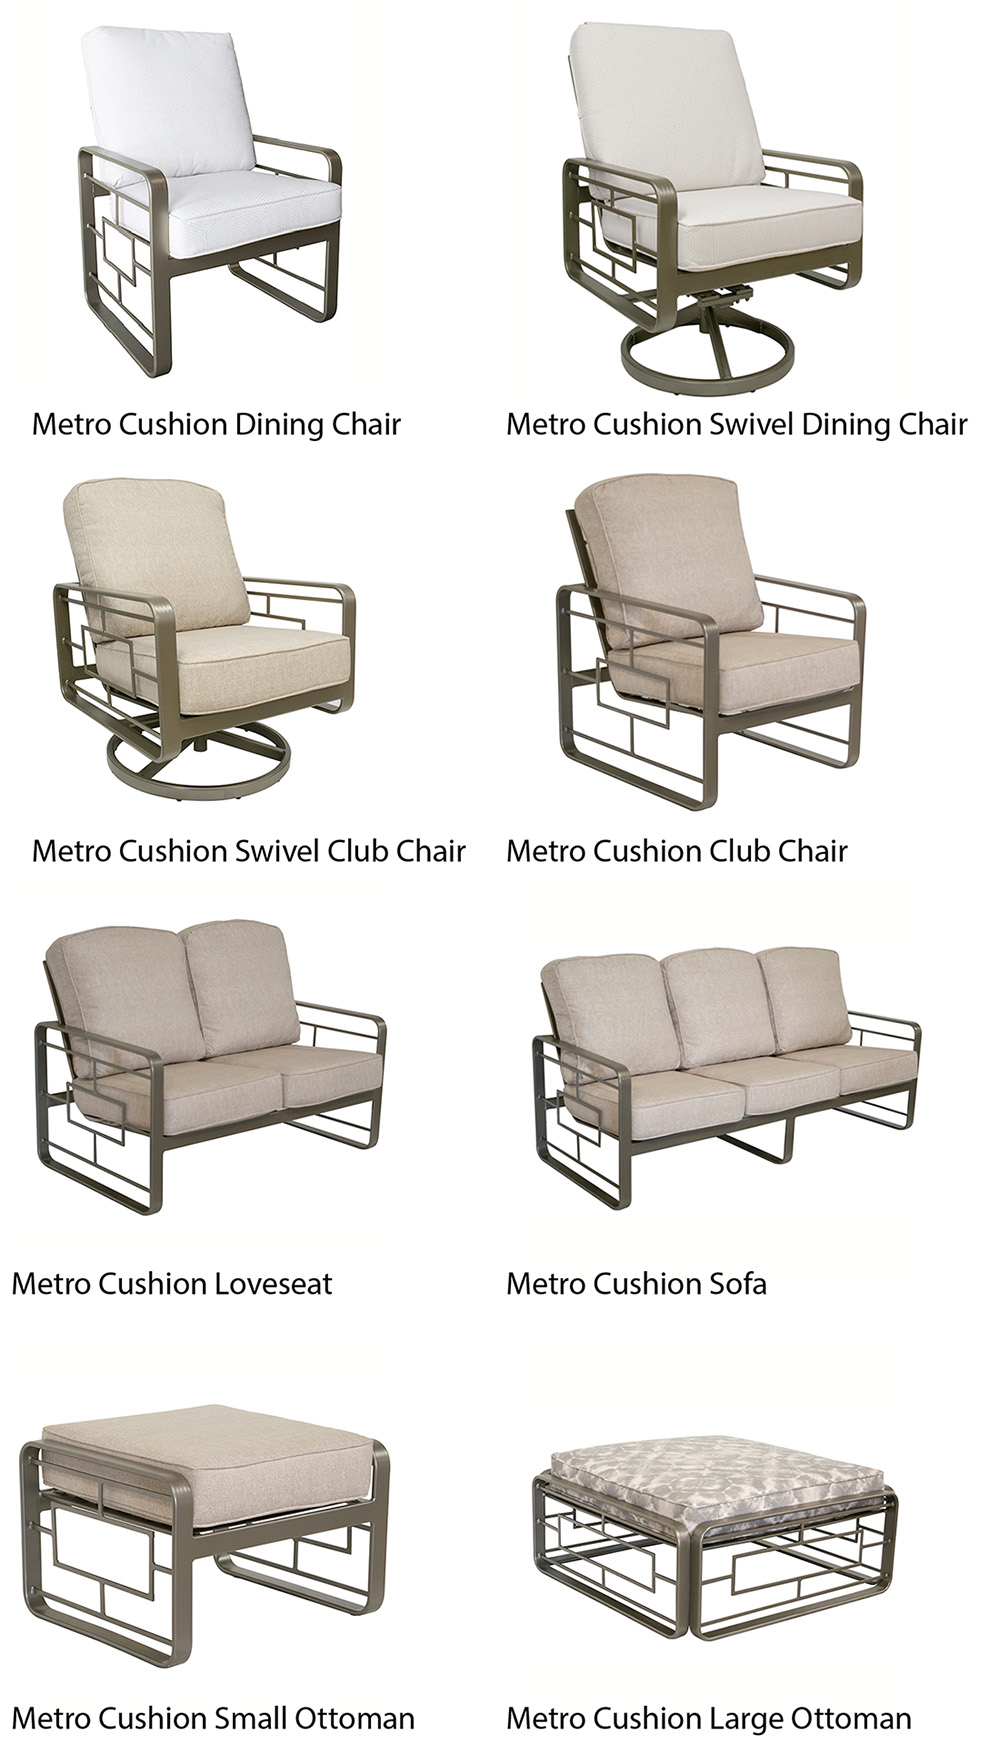 Outdoor by Design Metro Cushion Outdoor Seating and Dining